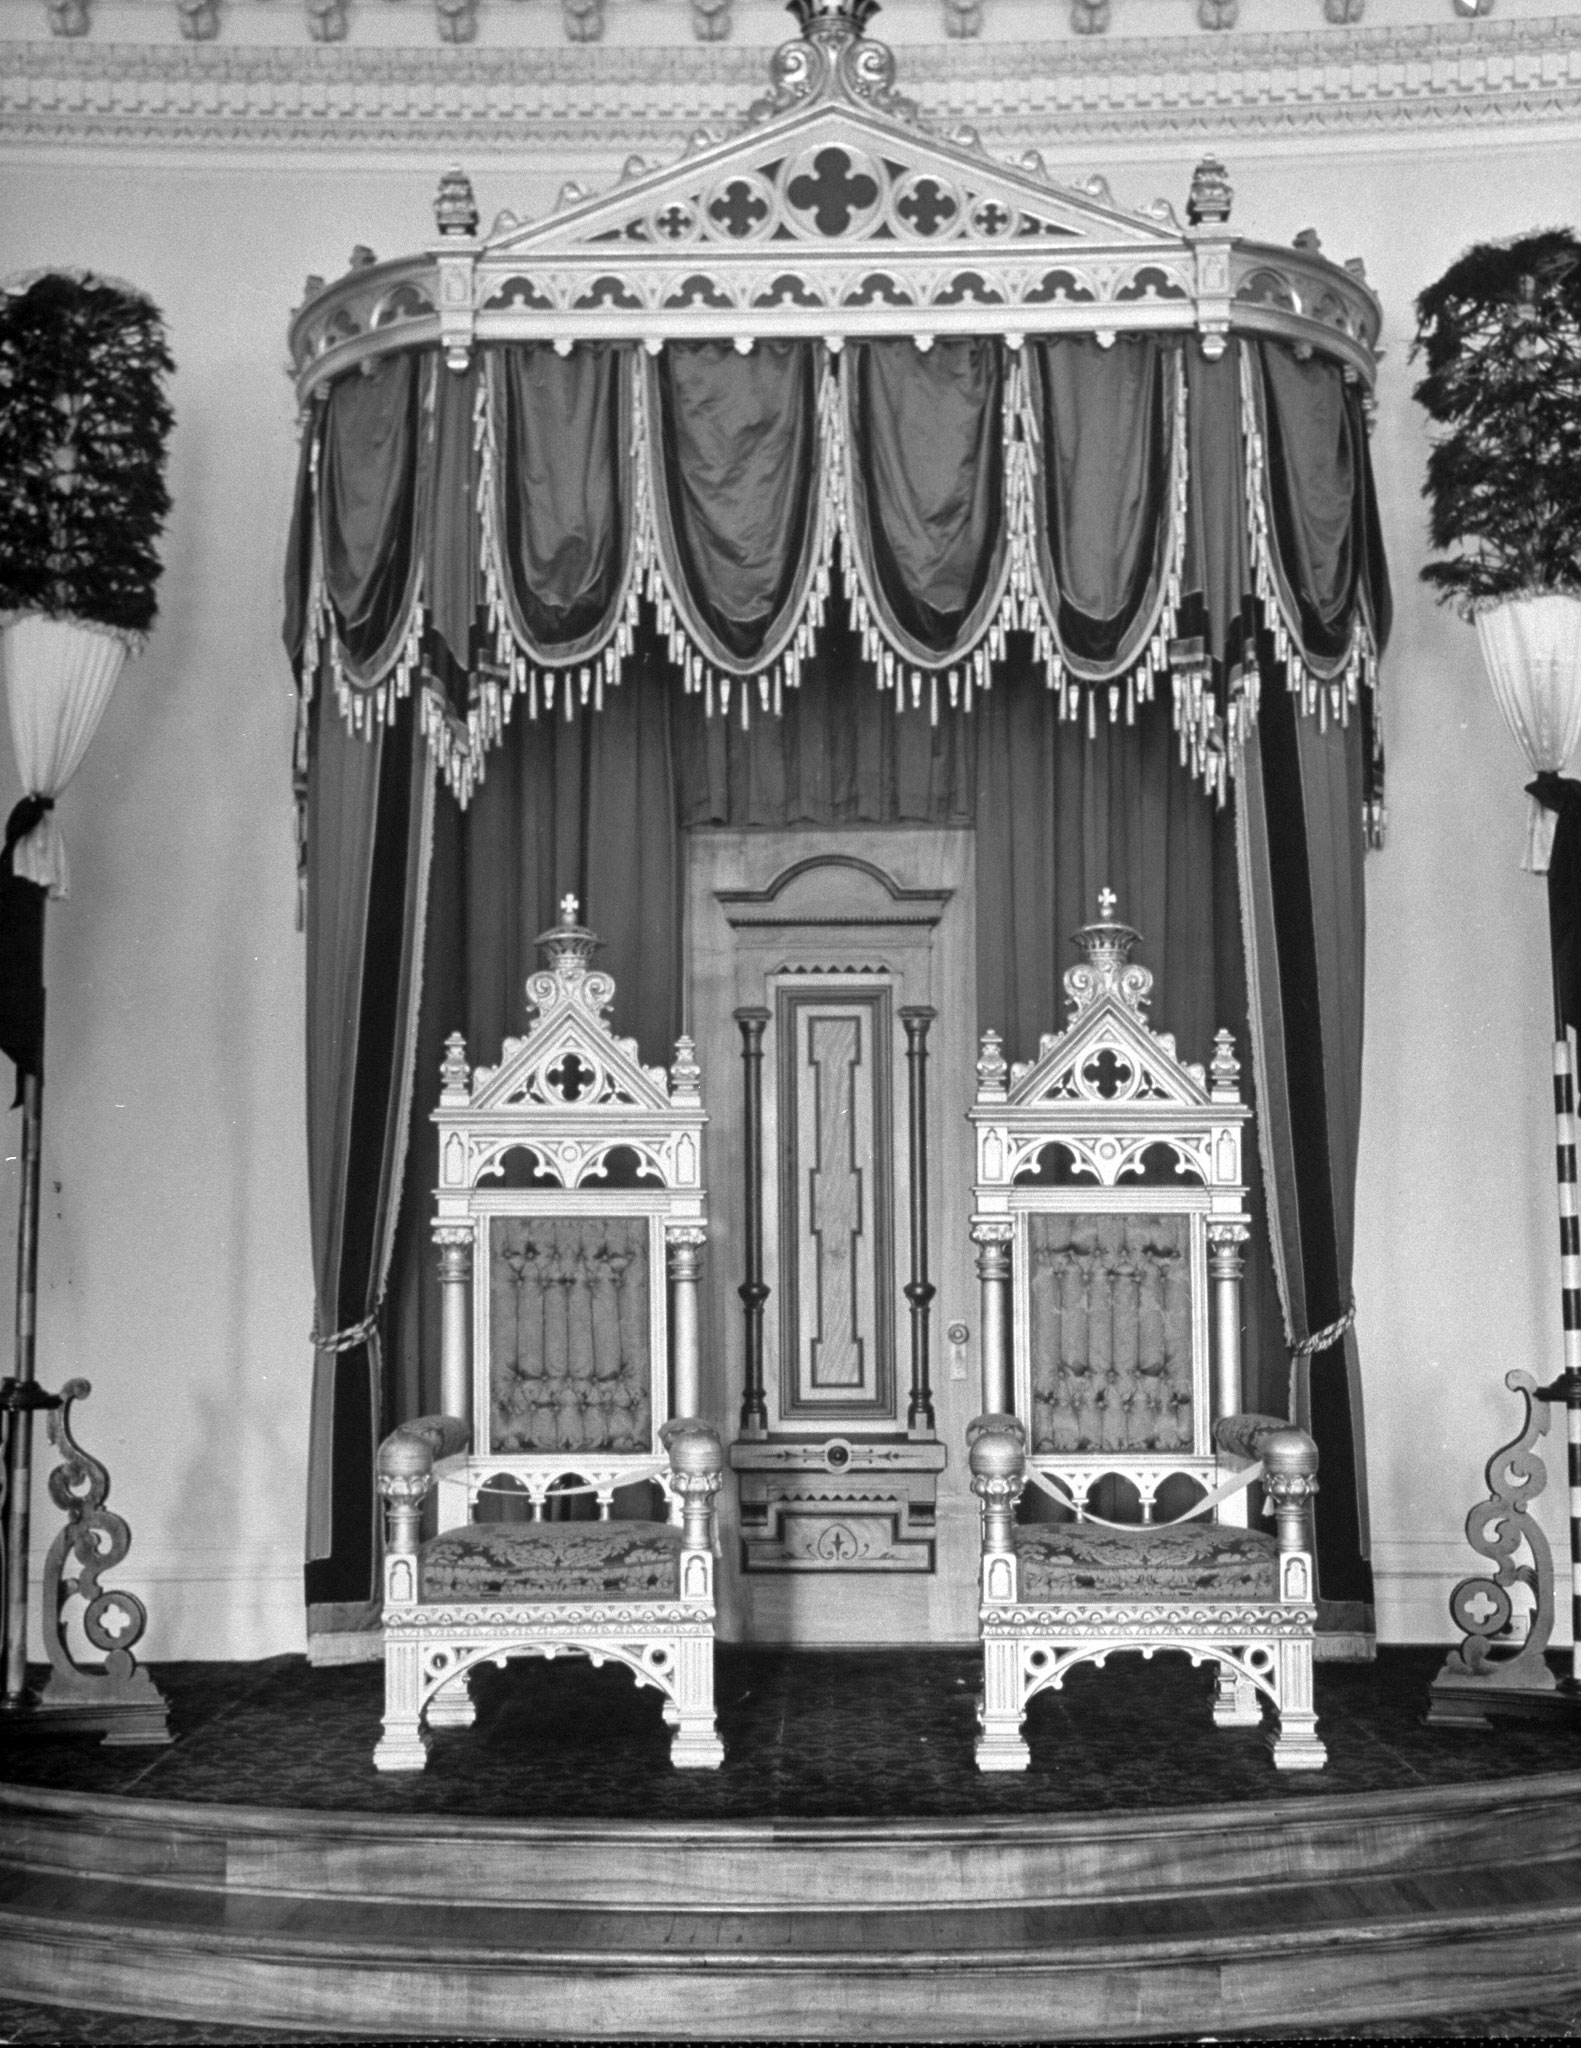 Two thrones on display in the throne room of the Lolani palace, Hawaii.